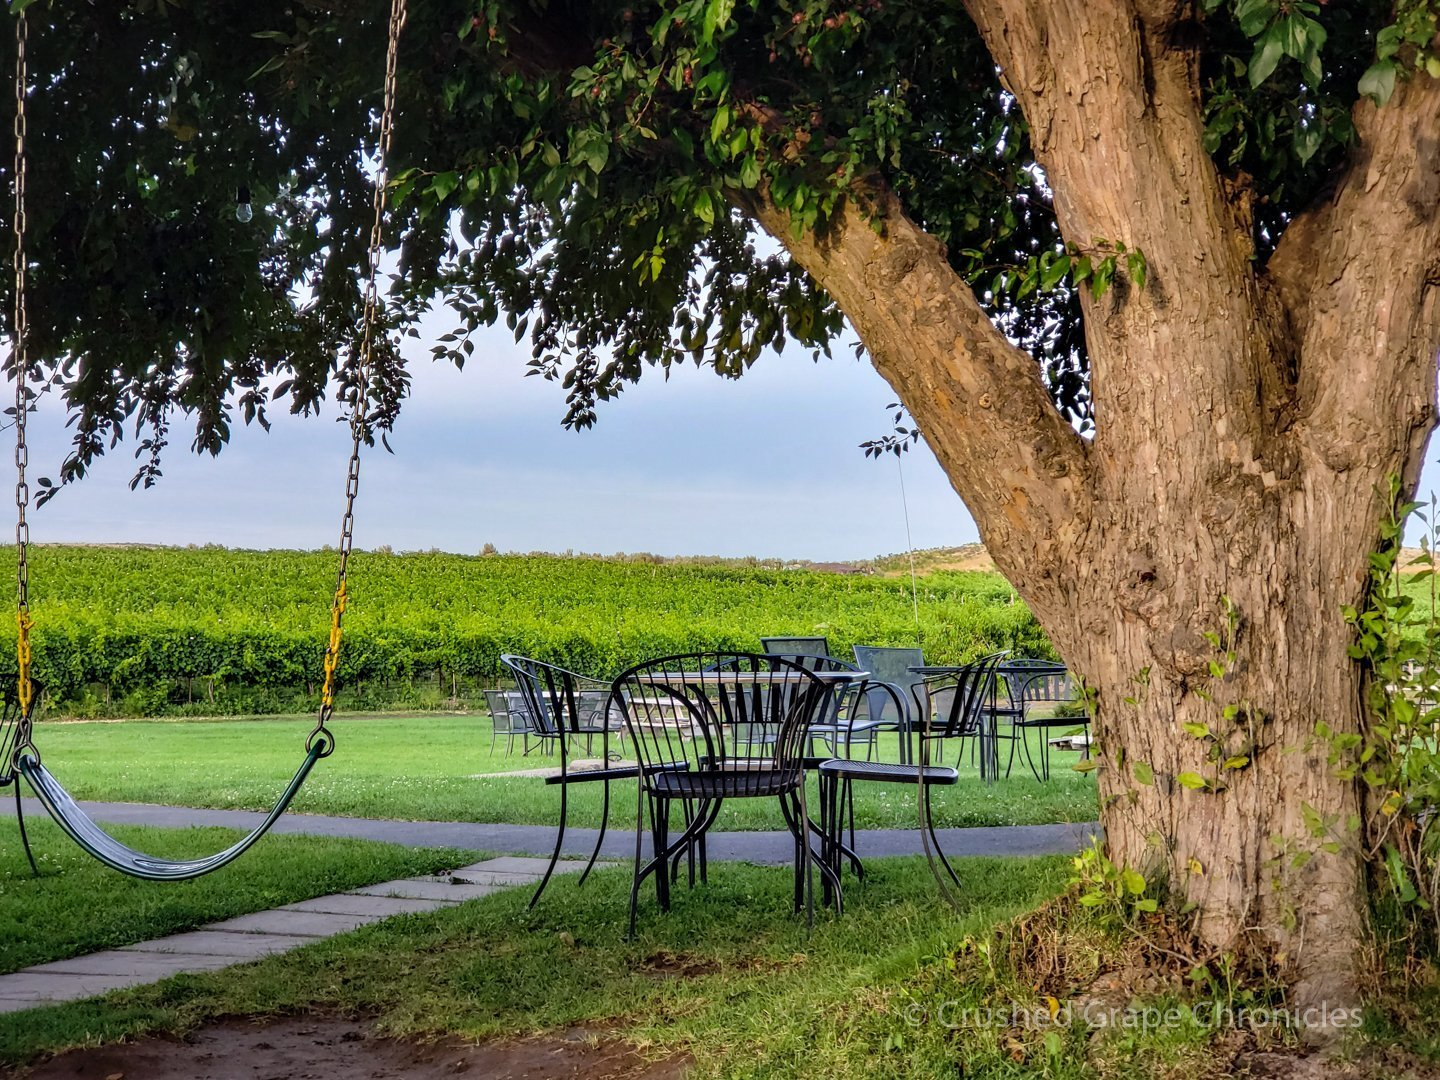 Tree swing and tables for enjoying a glass or a bottle at Wilridge Vineyard Naches Heights Washington